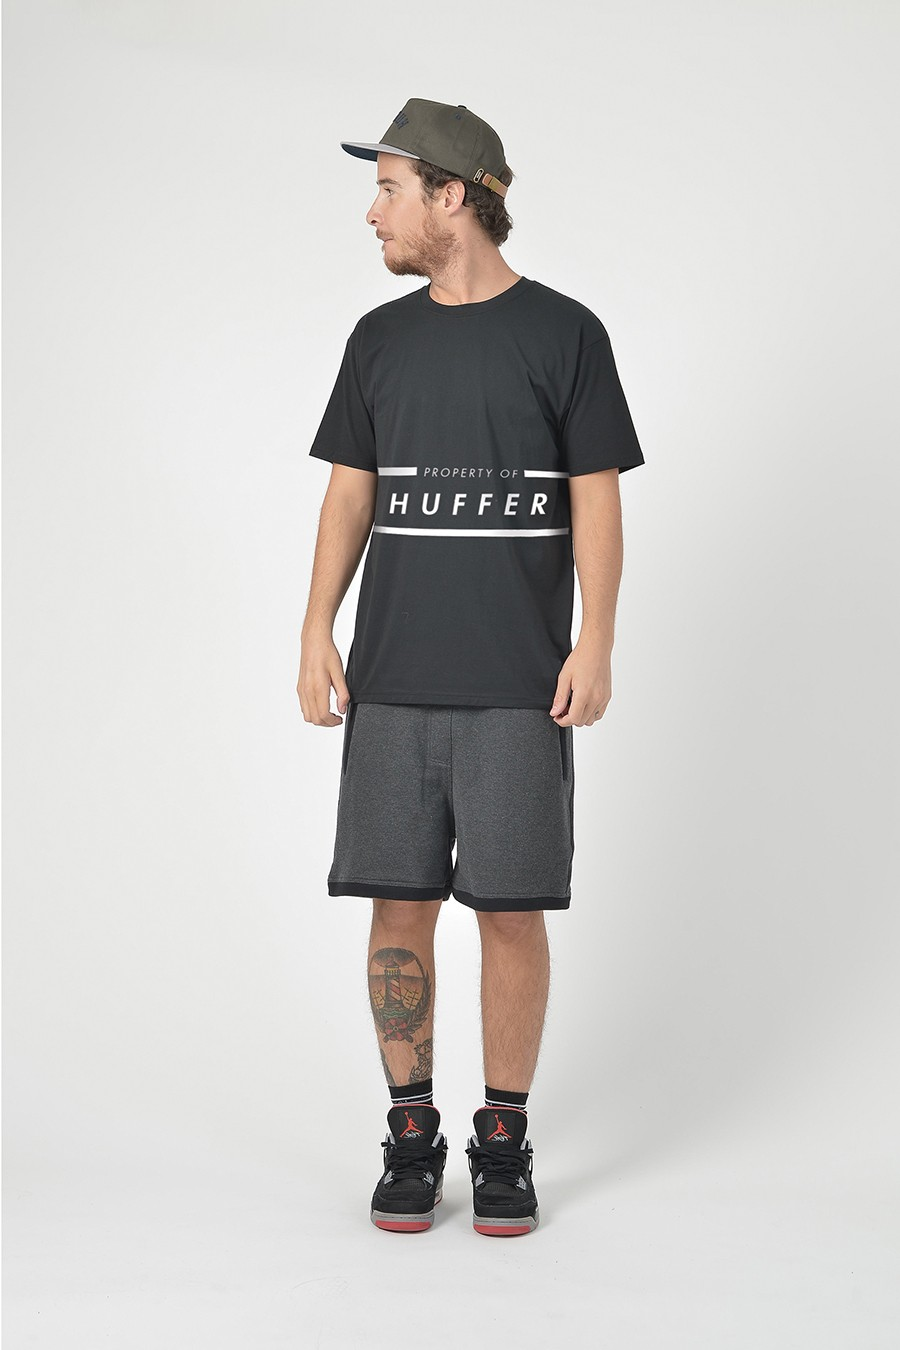 Introducing The Huffer Summer '14 Collection…